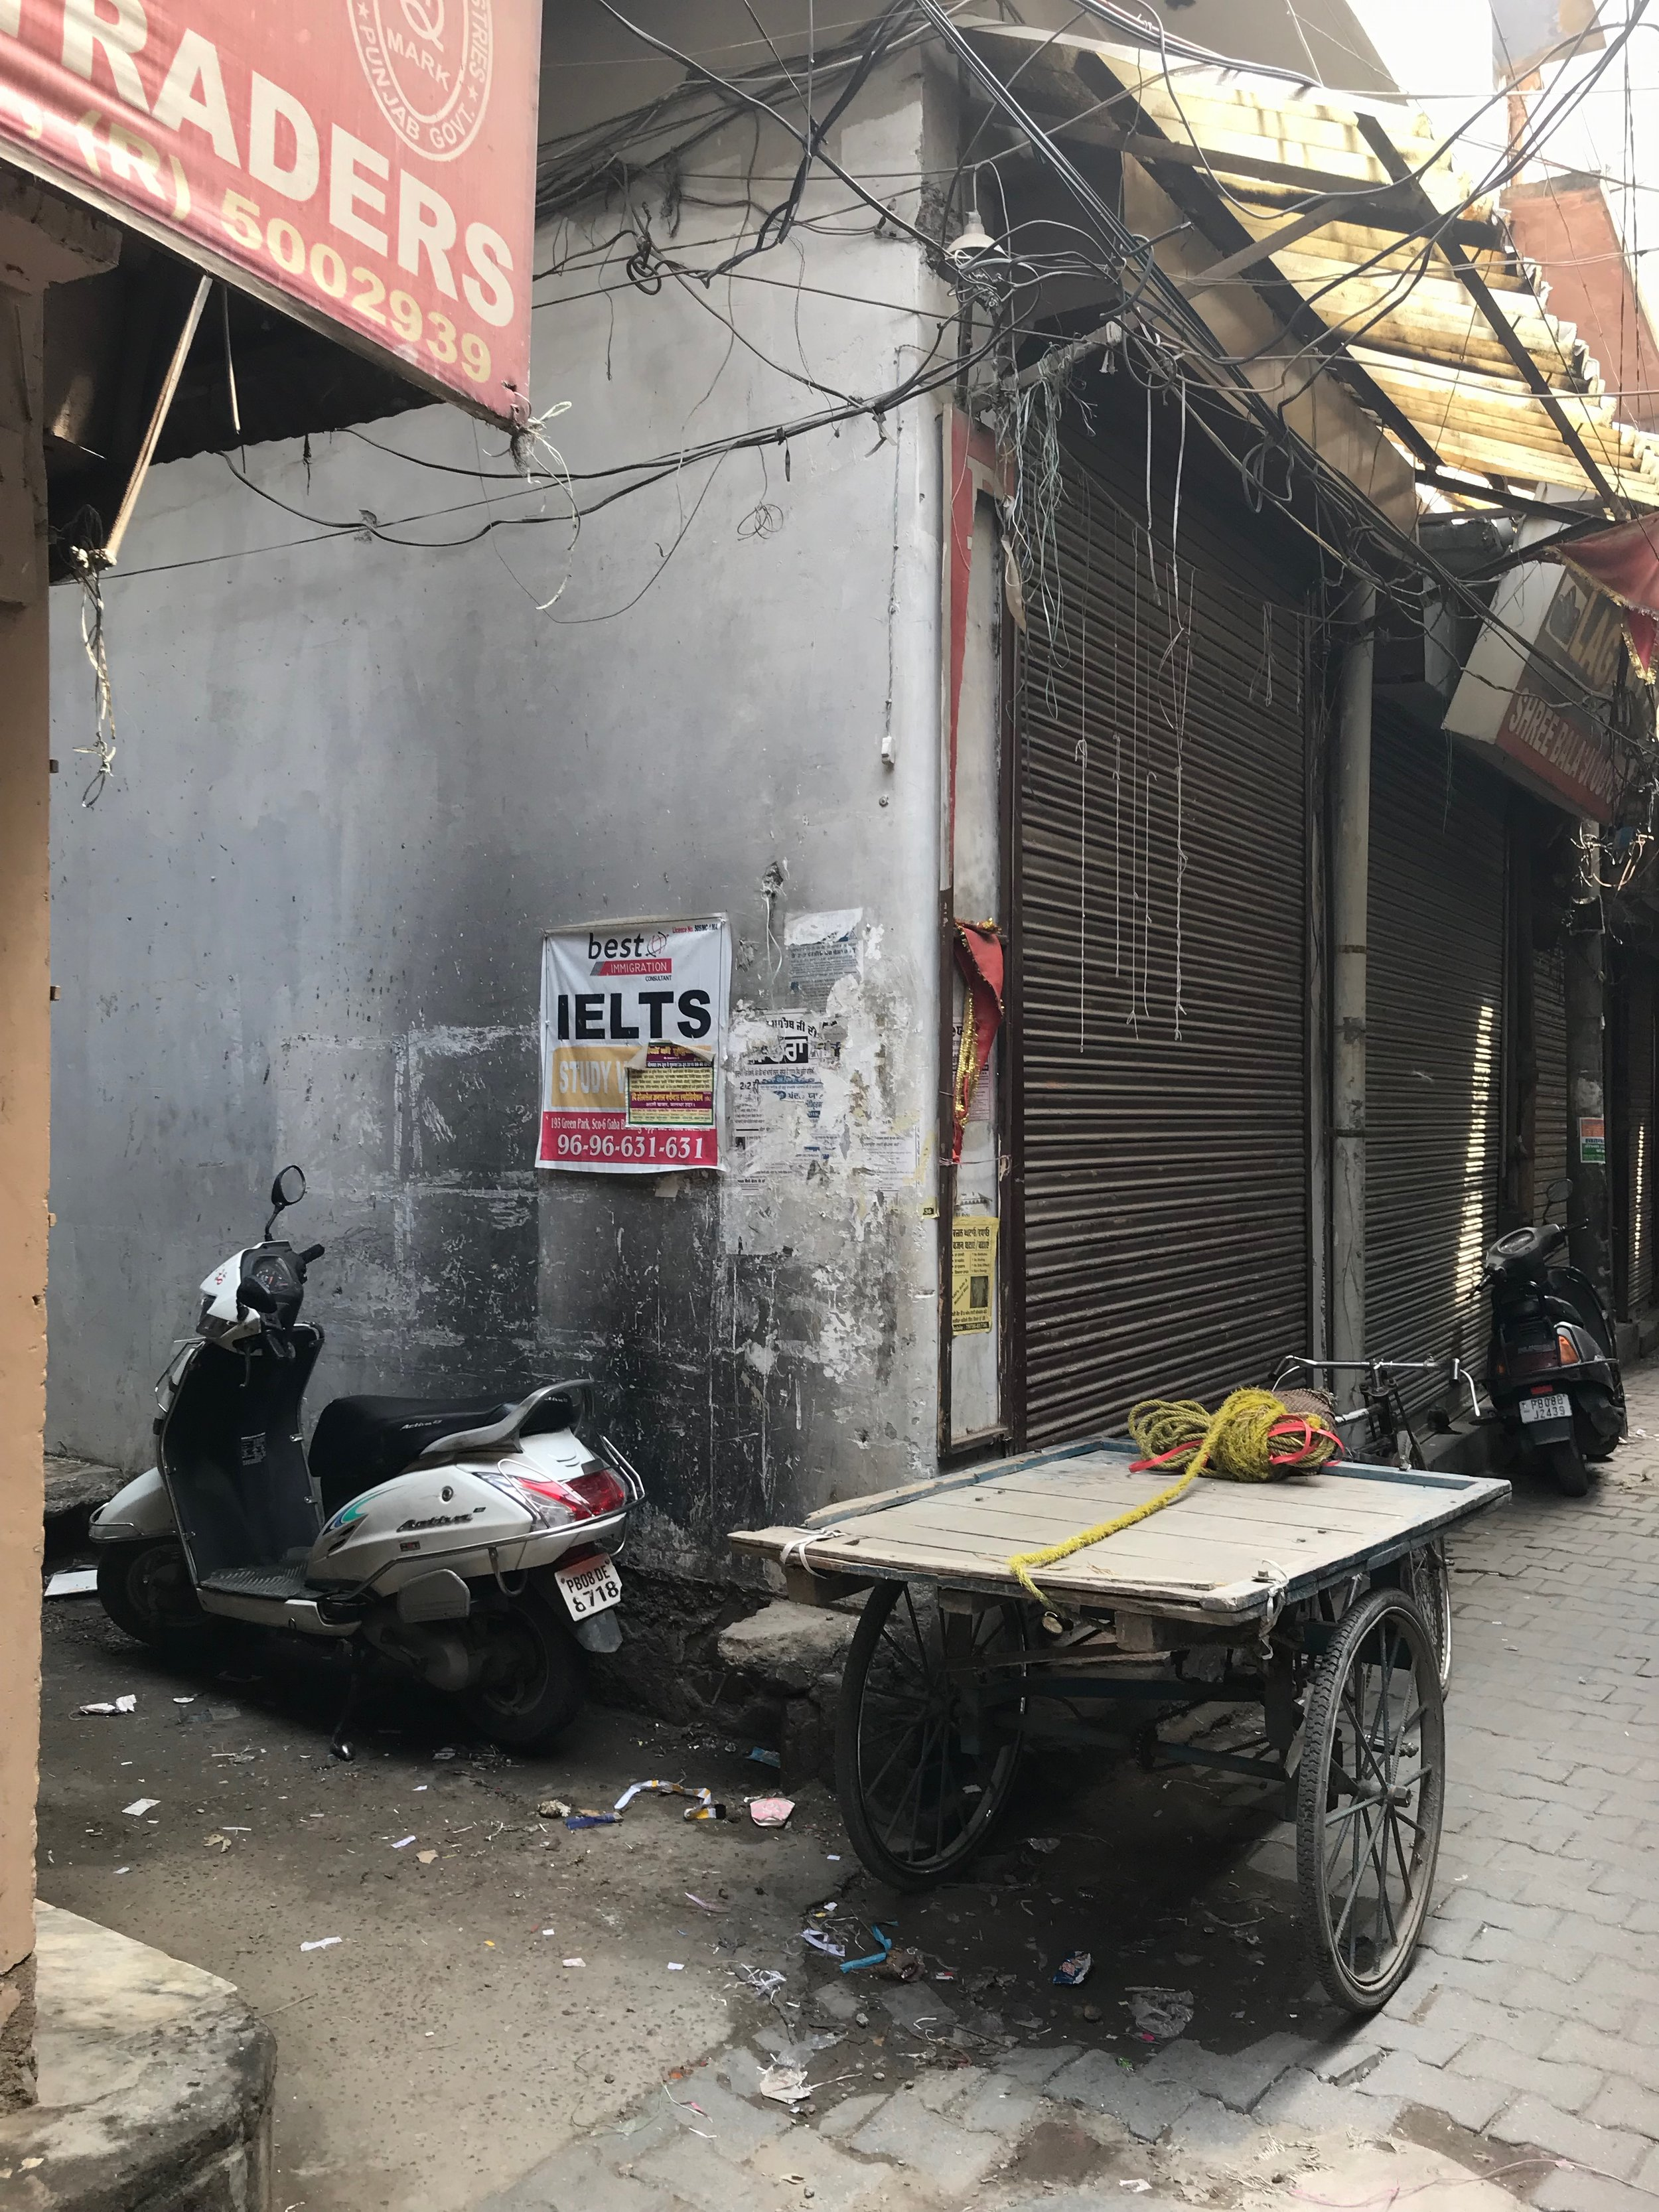 IELTS signs around every corner of the city